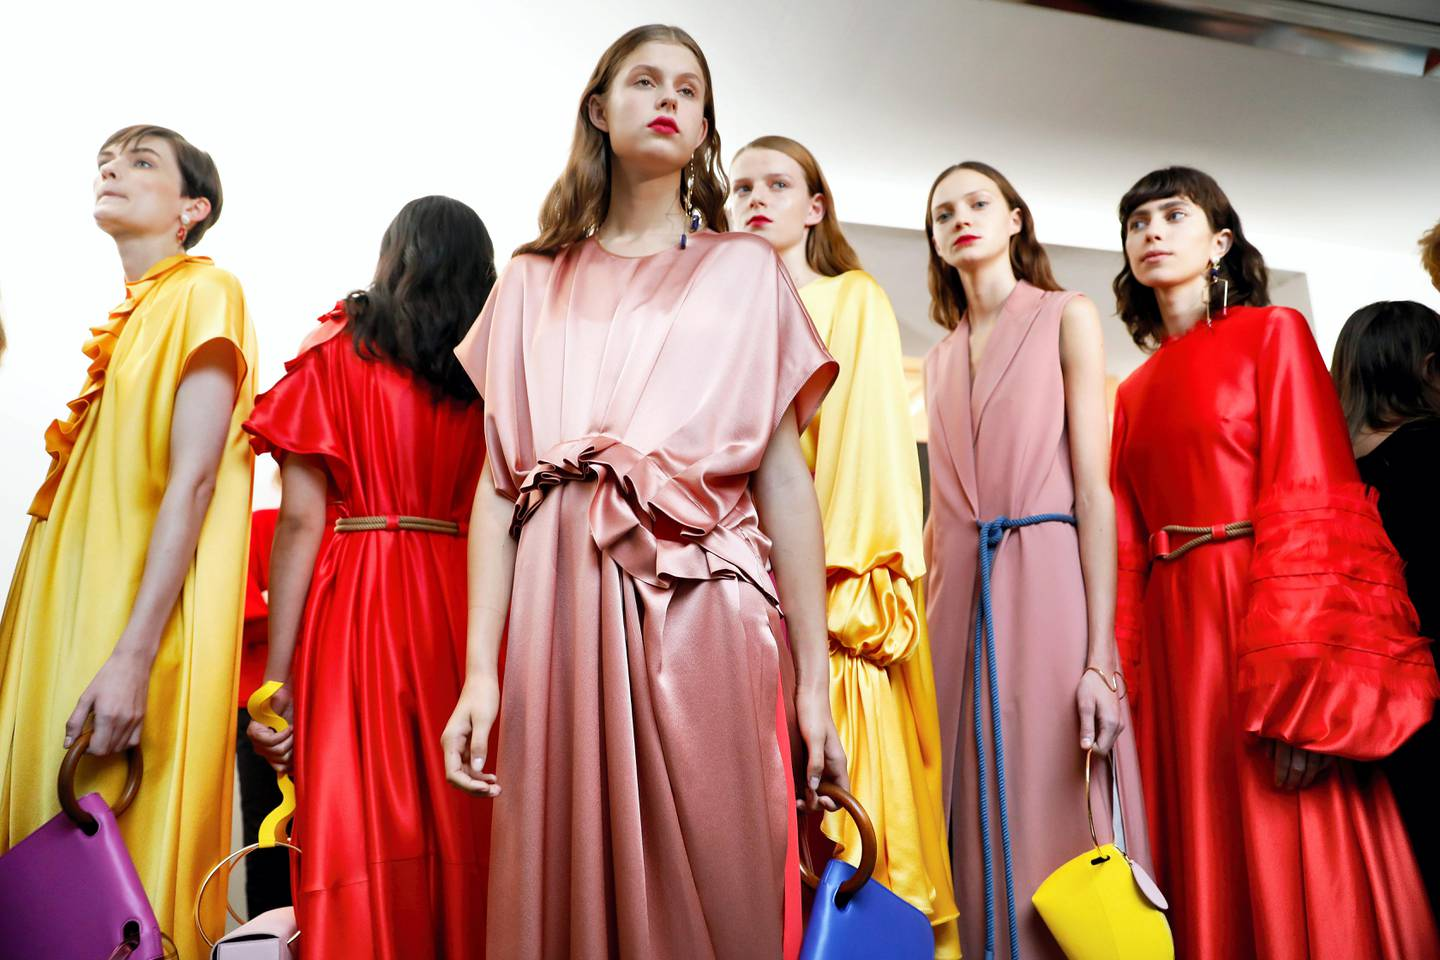 LONDON, ENGLAND - SEPTEMBER 18:  Models backstage ahead of the Roksanda show during London Fashion Week September 2017 on September 18, 2017 in London, England.  (Photo by Tristan Fewings/BFC/Getty Images for The British Fashion Council)